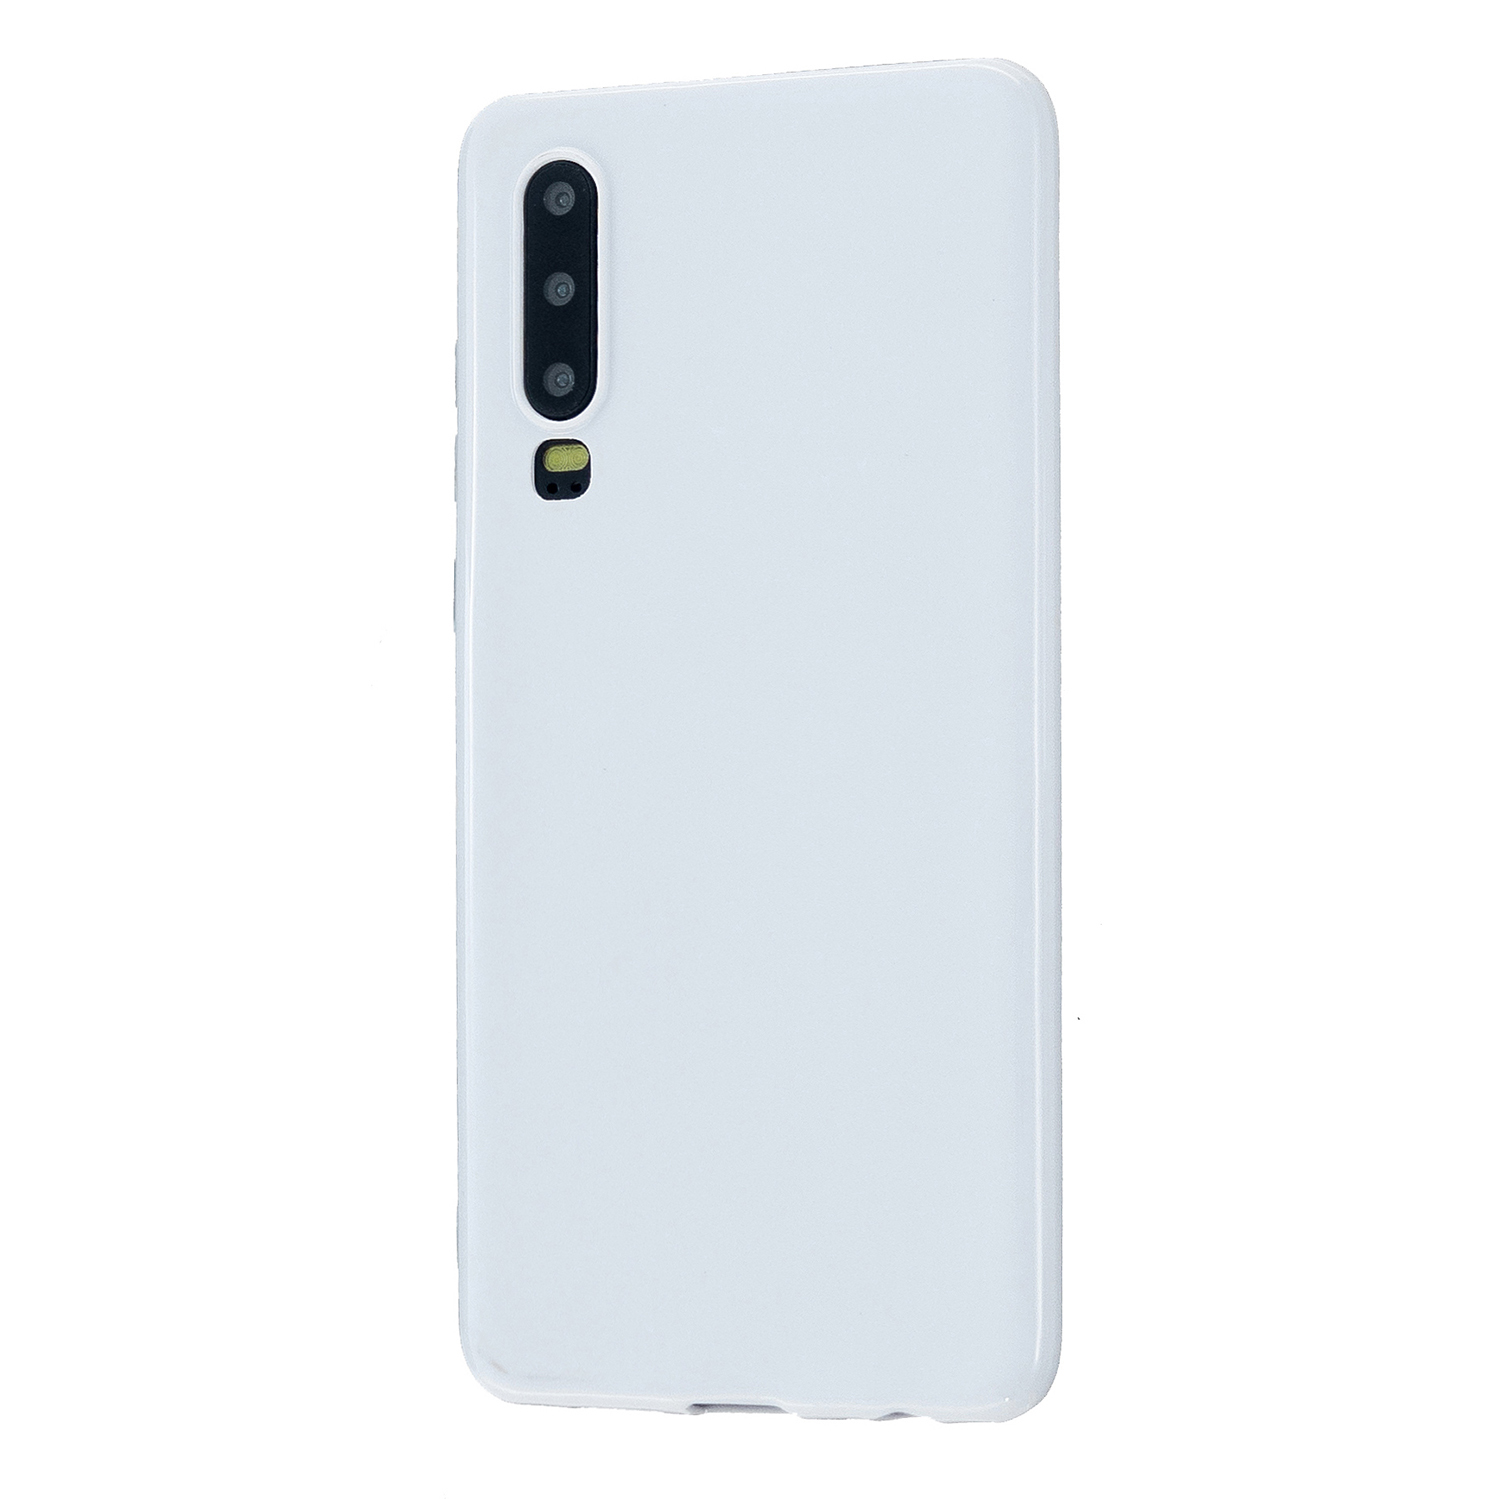 For HUAWEI P30/P30 Lite/P30 Pro Cellphone Case Simple Profile Soft TPU Scratch Proof Phone Shell Milk white